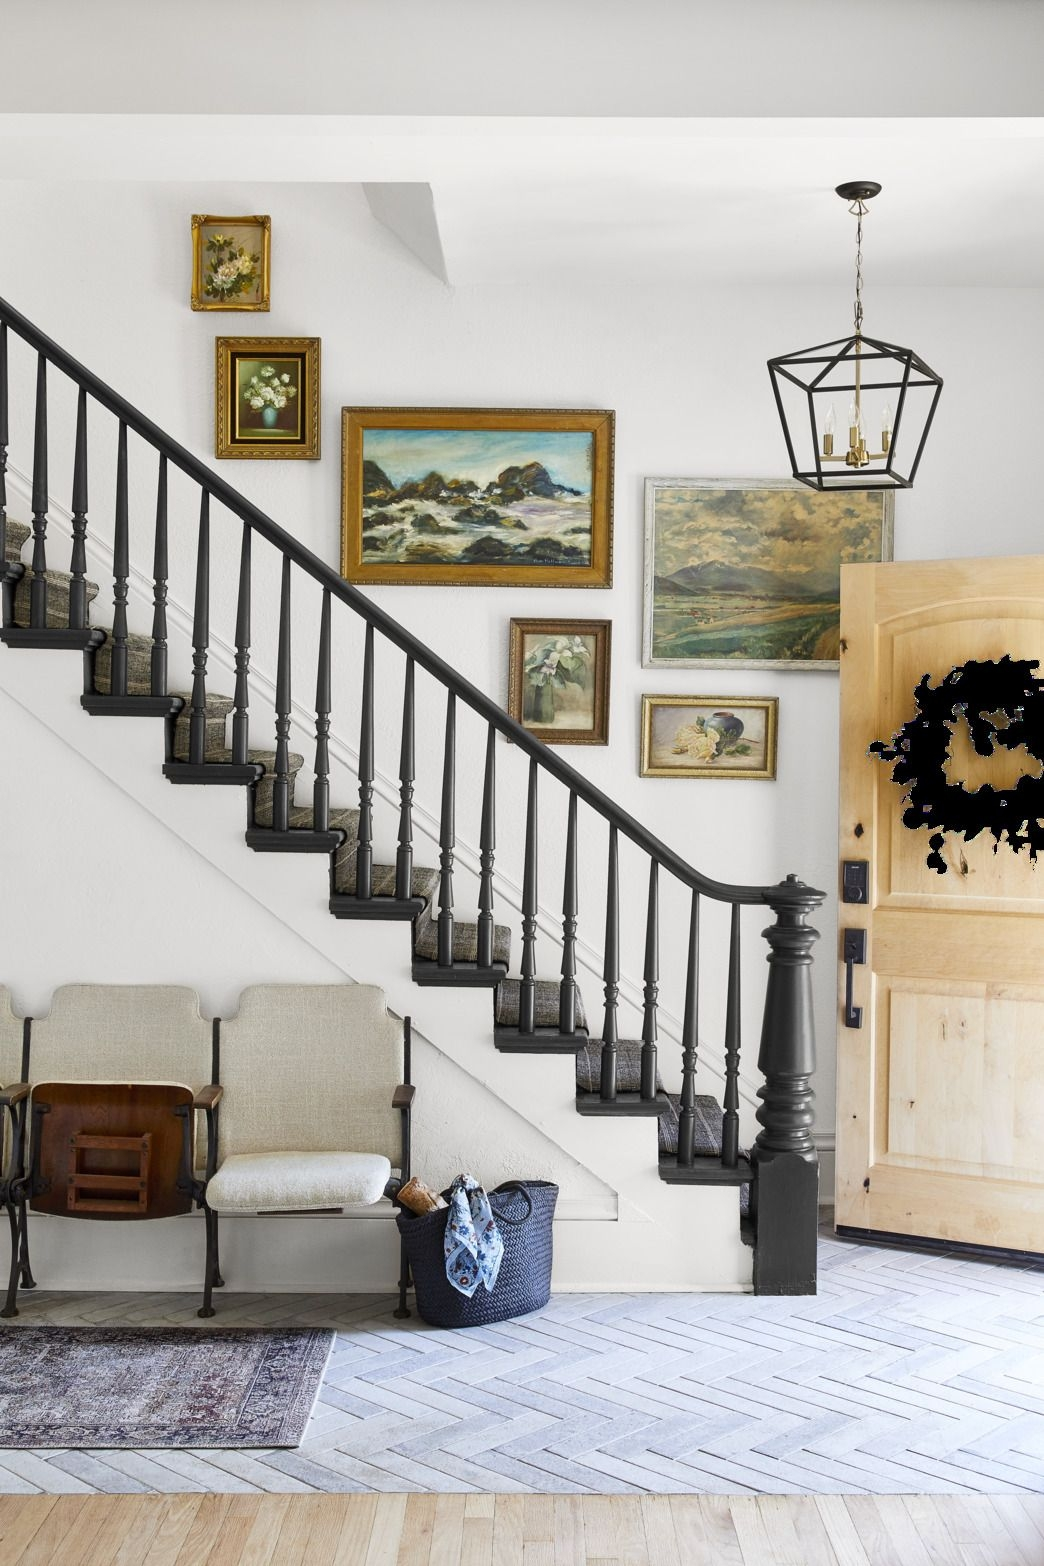 55 Best Staircase Ideas Top Ways To Decorate A Stairway | Staircase Side Wall Design | Farmhouse | Ladder | Bookshelf | Small Space | Beautiful